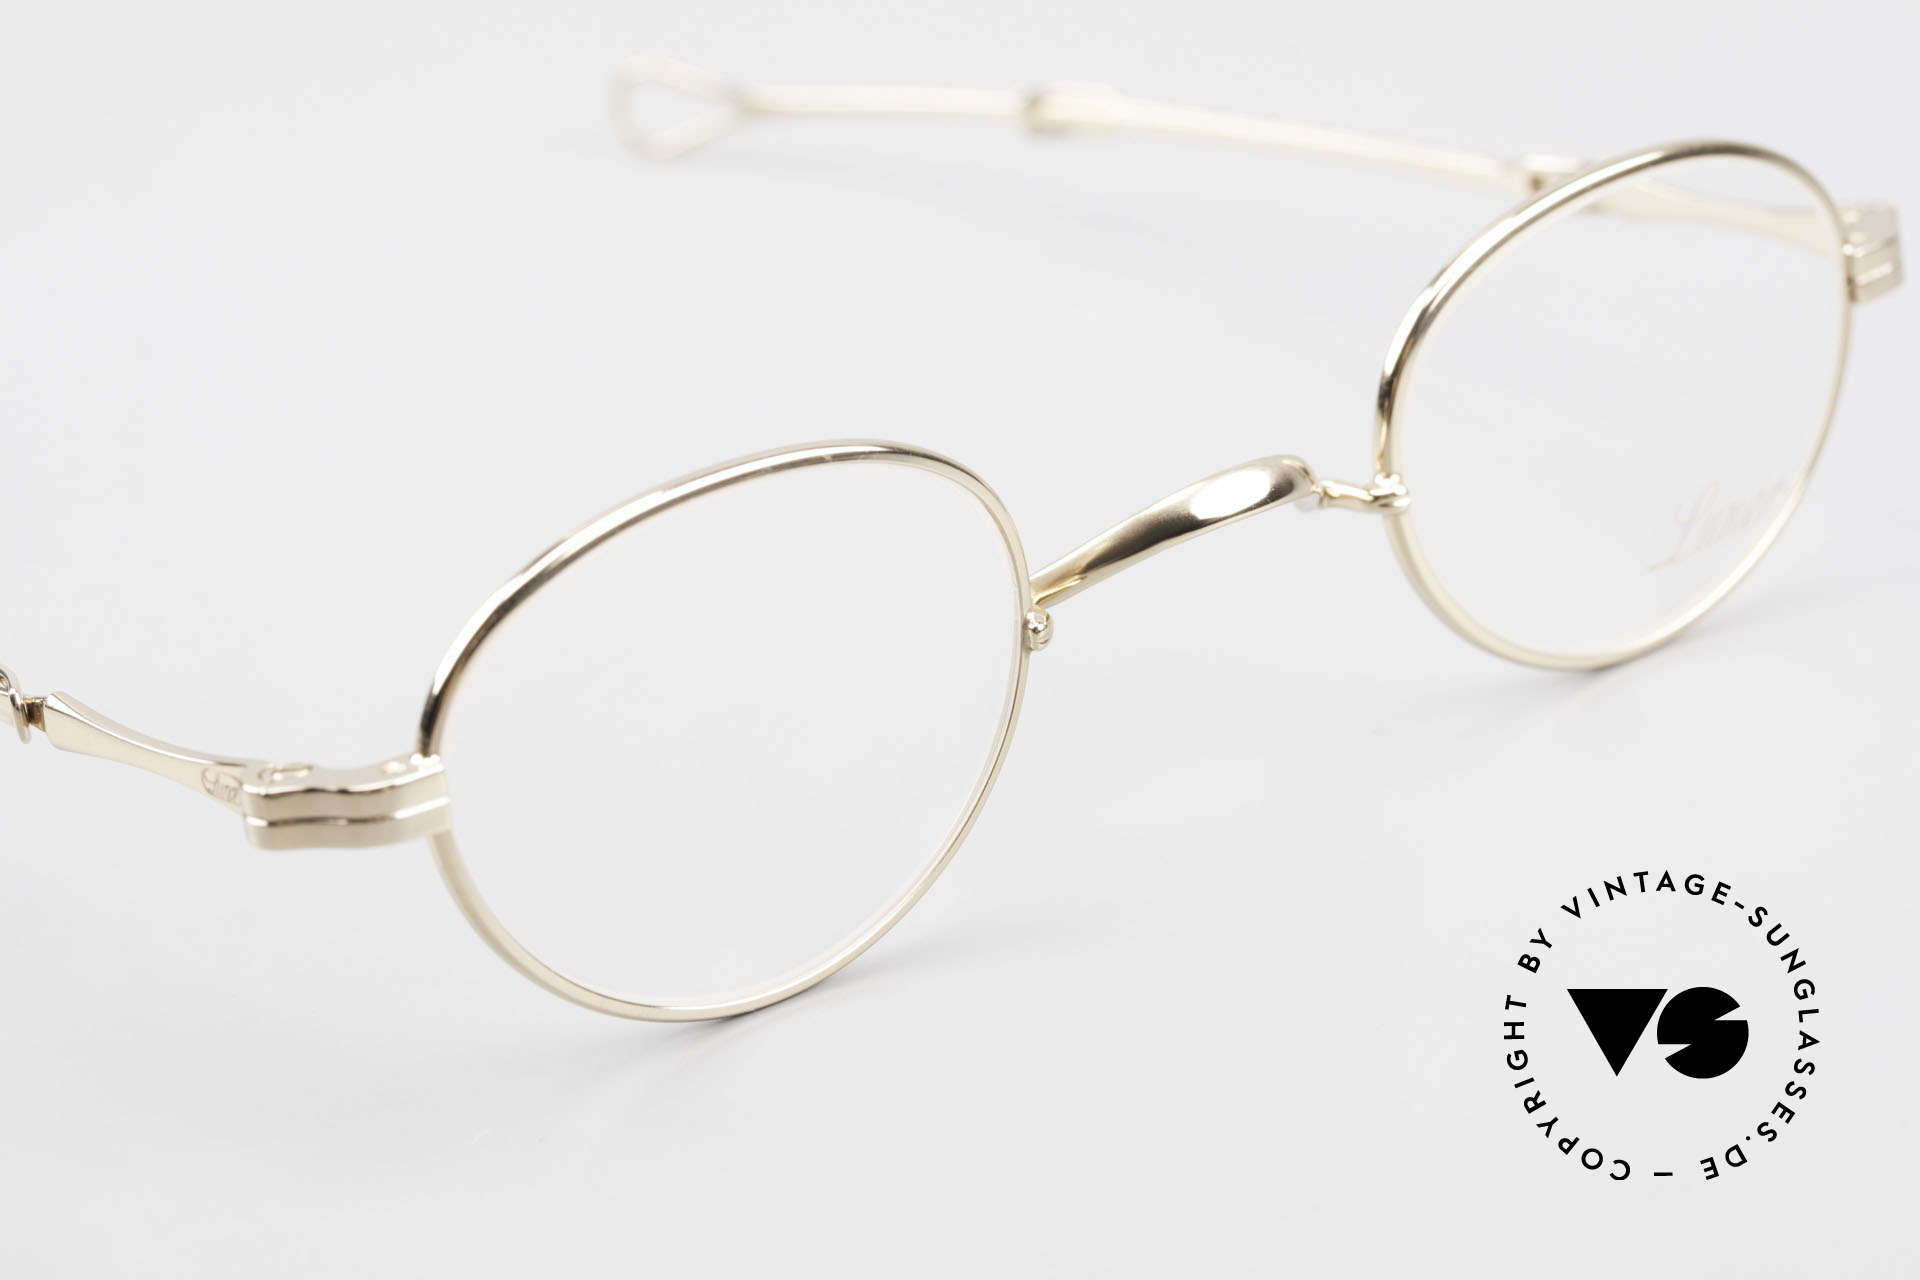 Lunor I 03 Telescopic Gold Plated With Slide Temples, unworn RARITY (for all lovers of quality) from app. 1999, Made for Men and Women